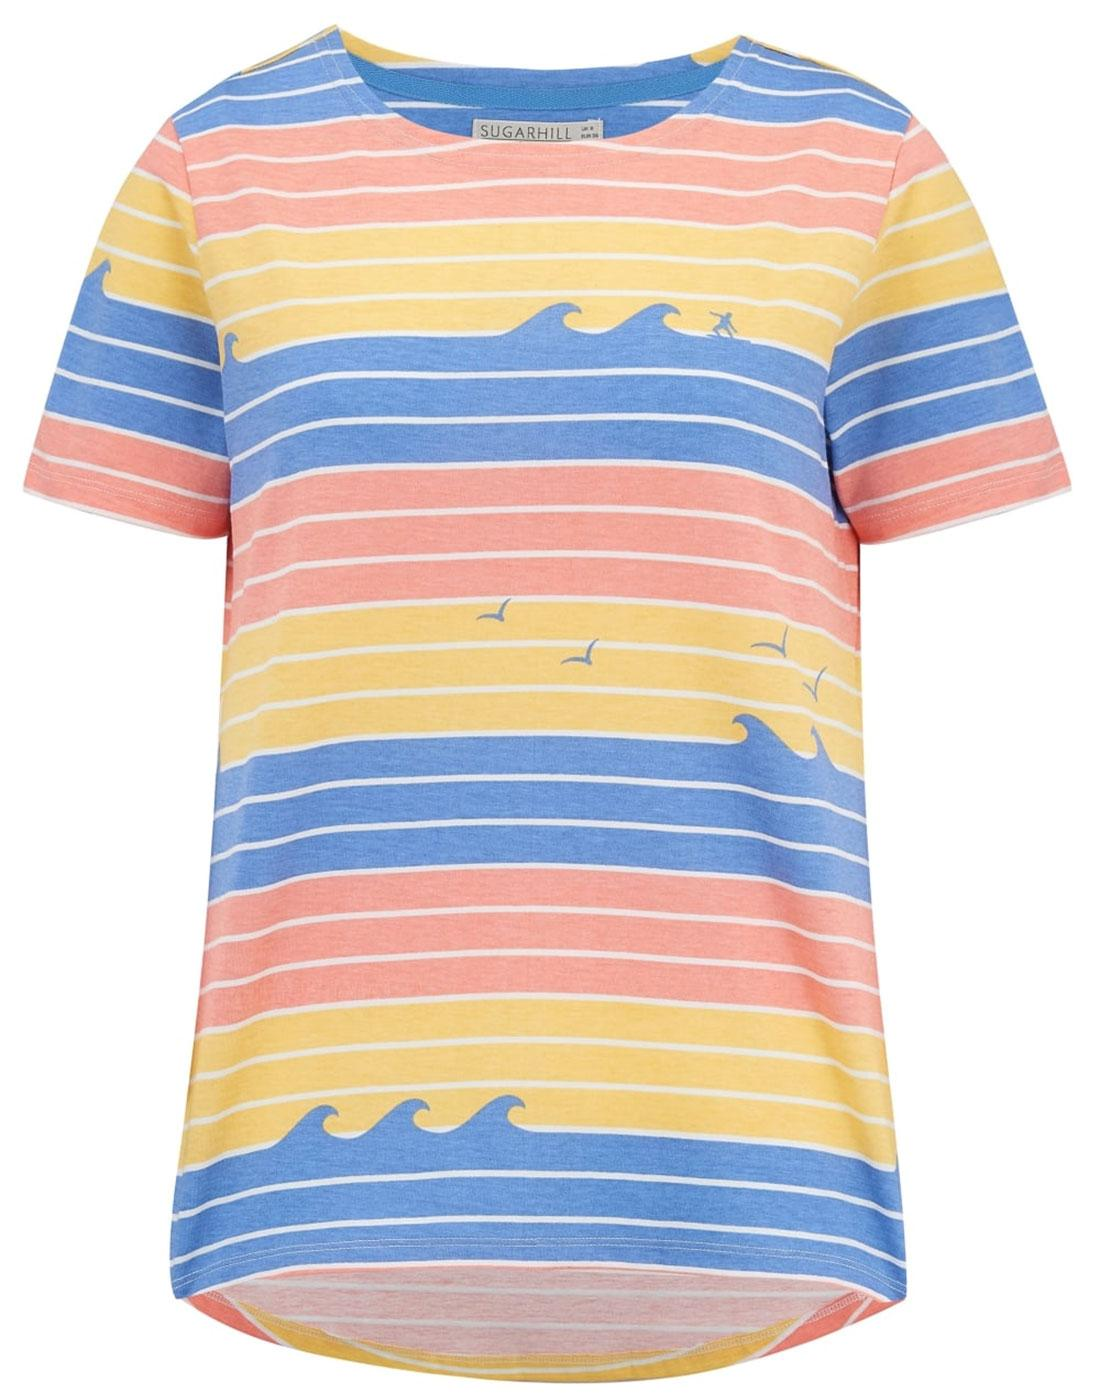 Cara SUGARHILL BOUTIQUE Retro Sunset Waves Tee